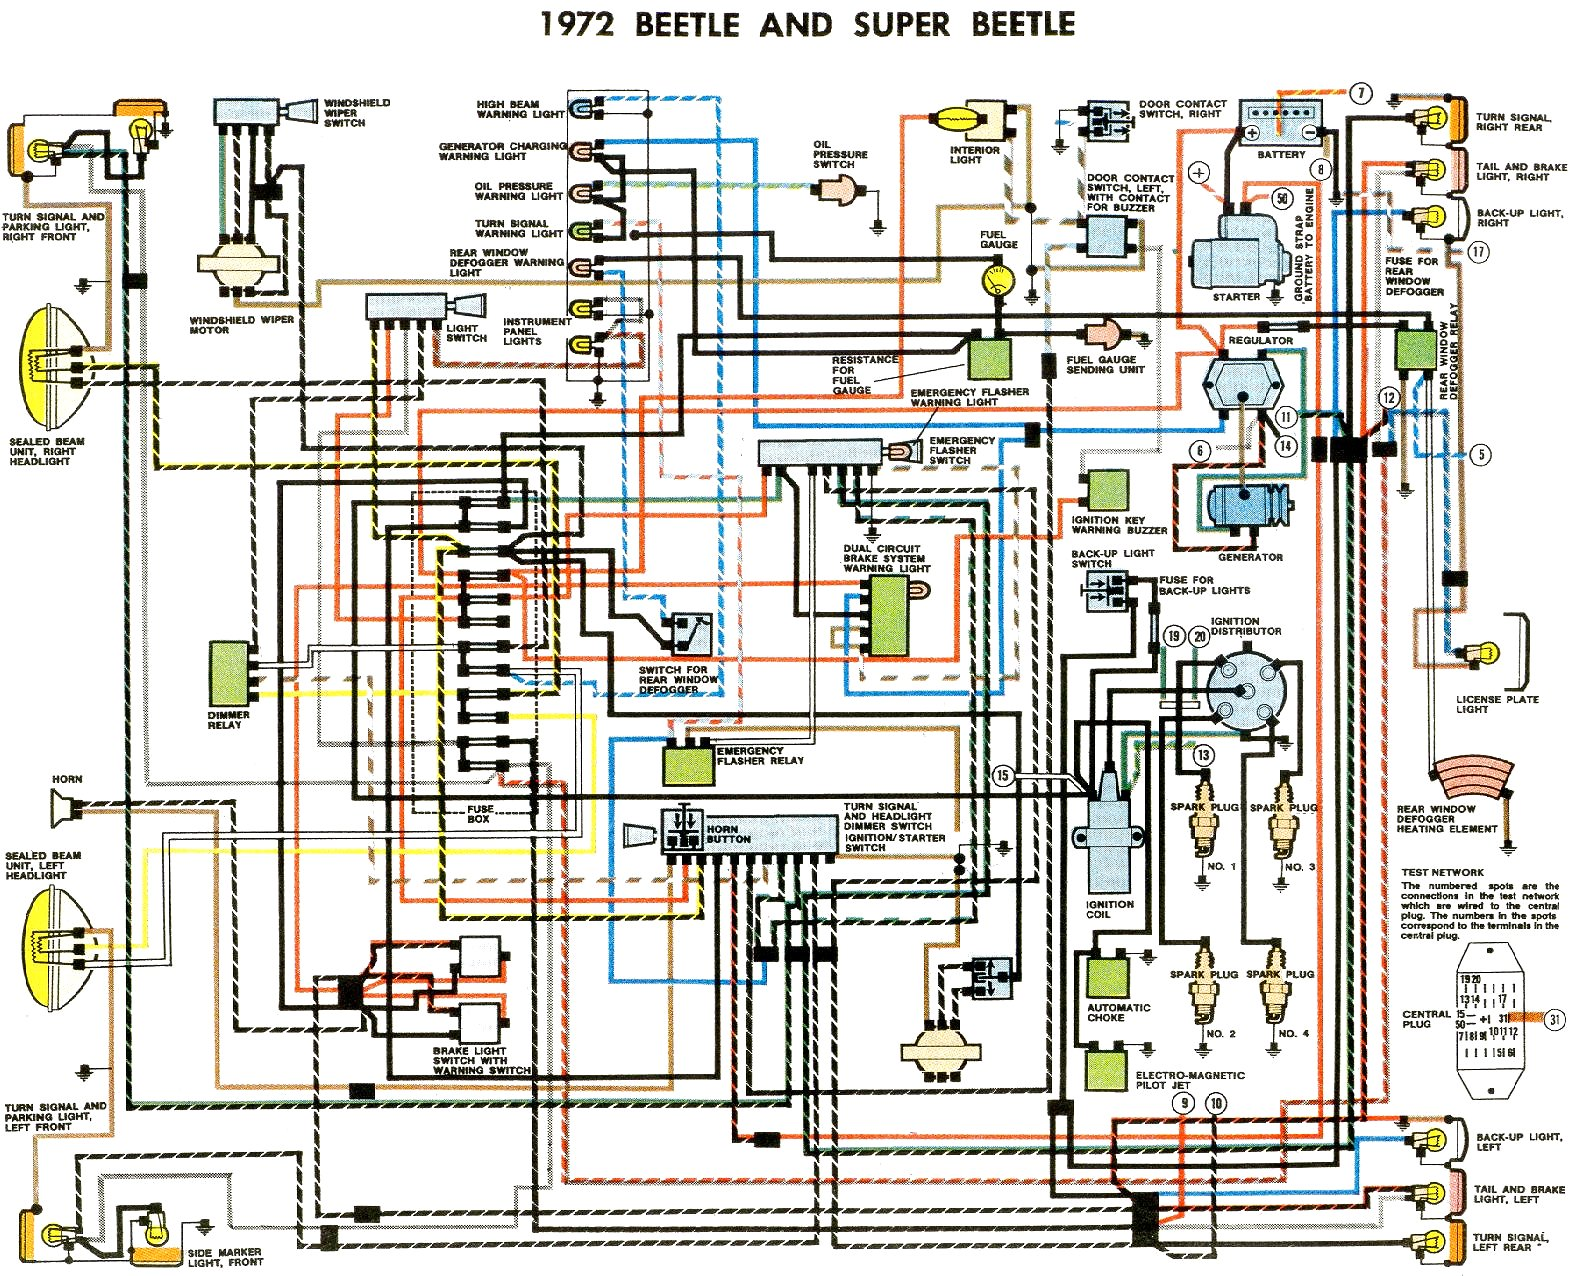 bug_72 2004 vw passat wiring diagram efcaviation com 1965 VW Beetle Wiring Diagram at edmiracle.co